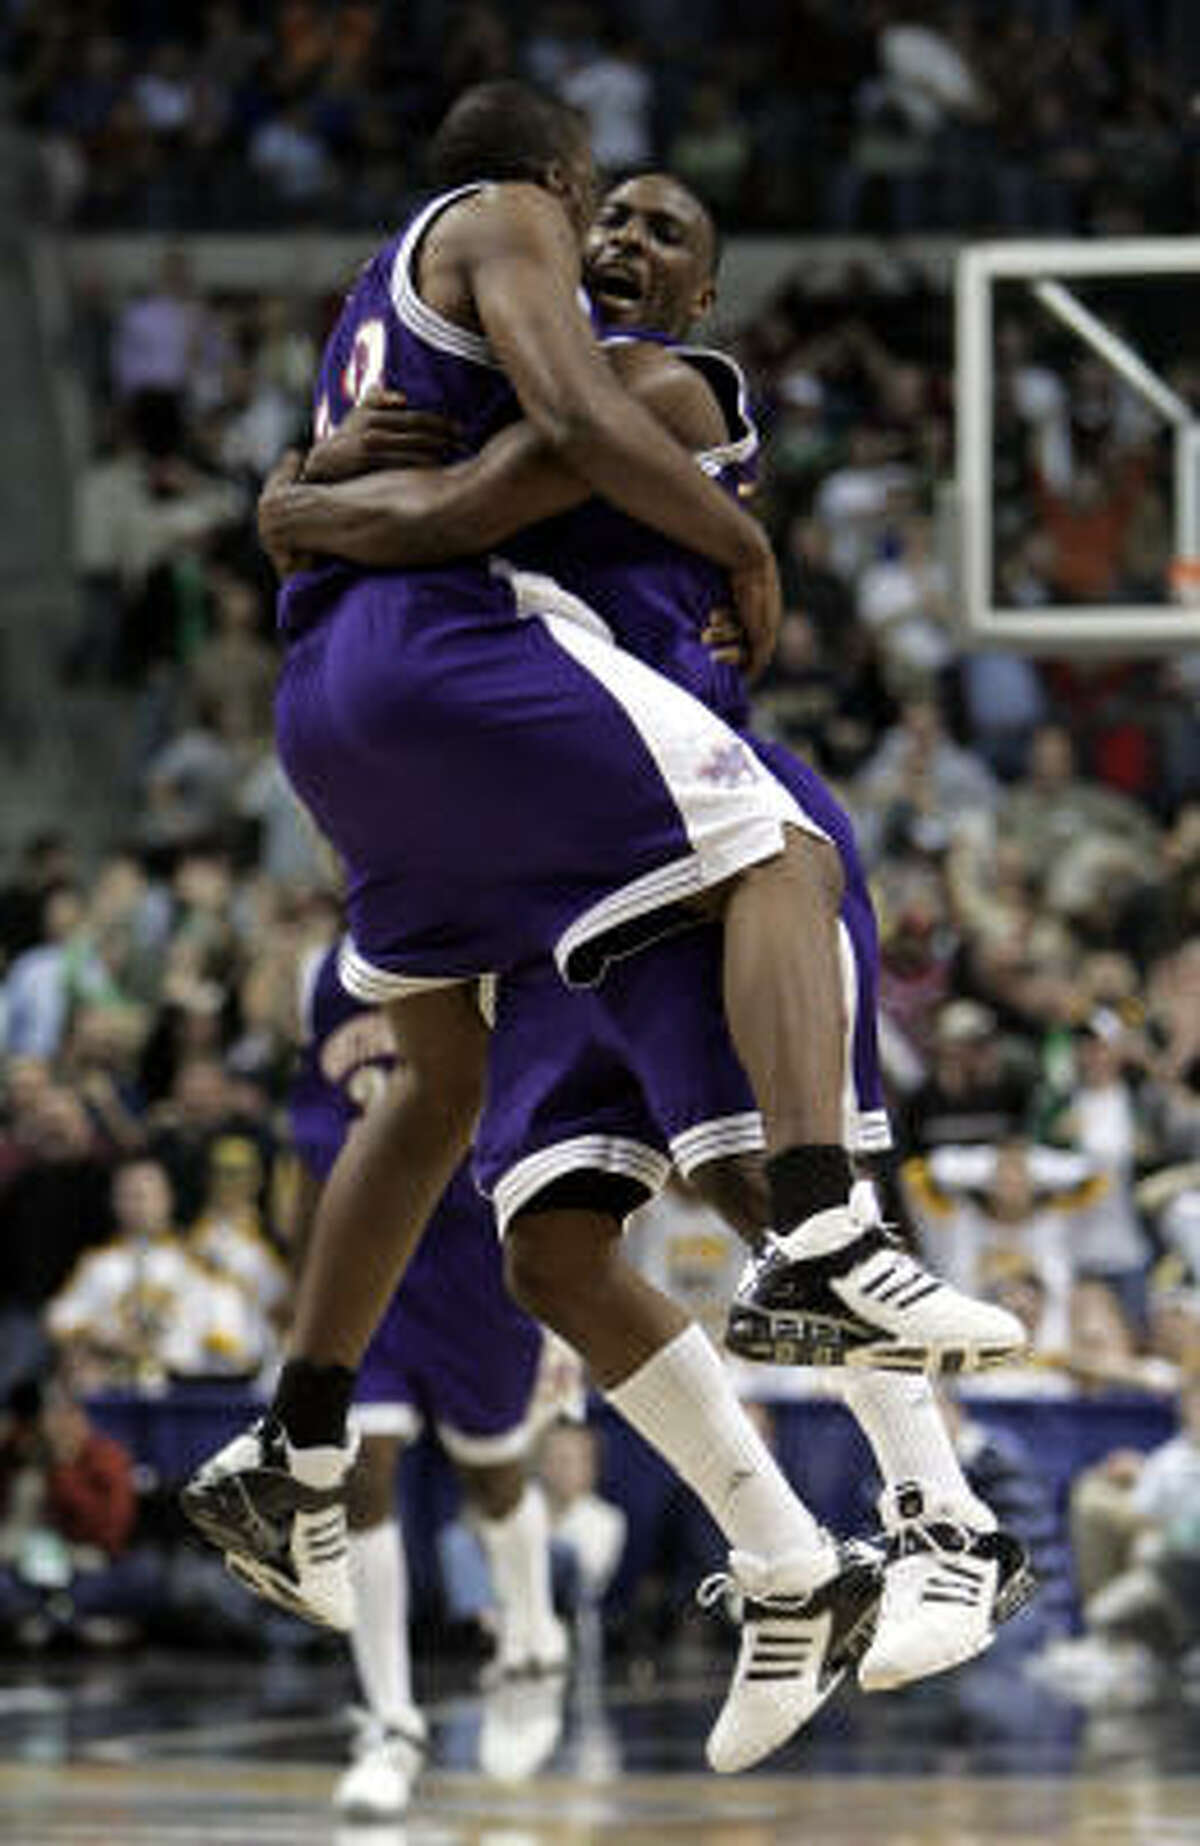 2006: No. 14 Northwestern State 64, No. 3 Iowa 63 Jermaine Wallace (back to camera) hit a fadeaway 3-pointer with less than a second remaining as the Demon Deacons shocked the Big Ten champions. Northwestern State, the Southland Conference champion, trailed by 17 with less than nine minutes remaining.